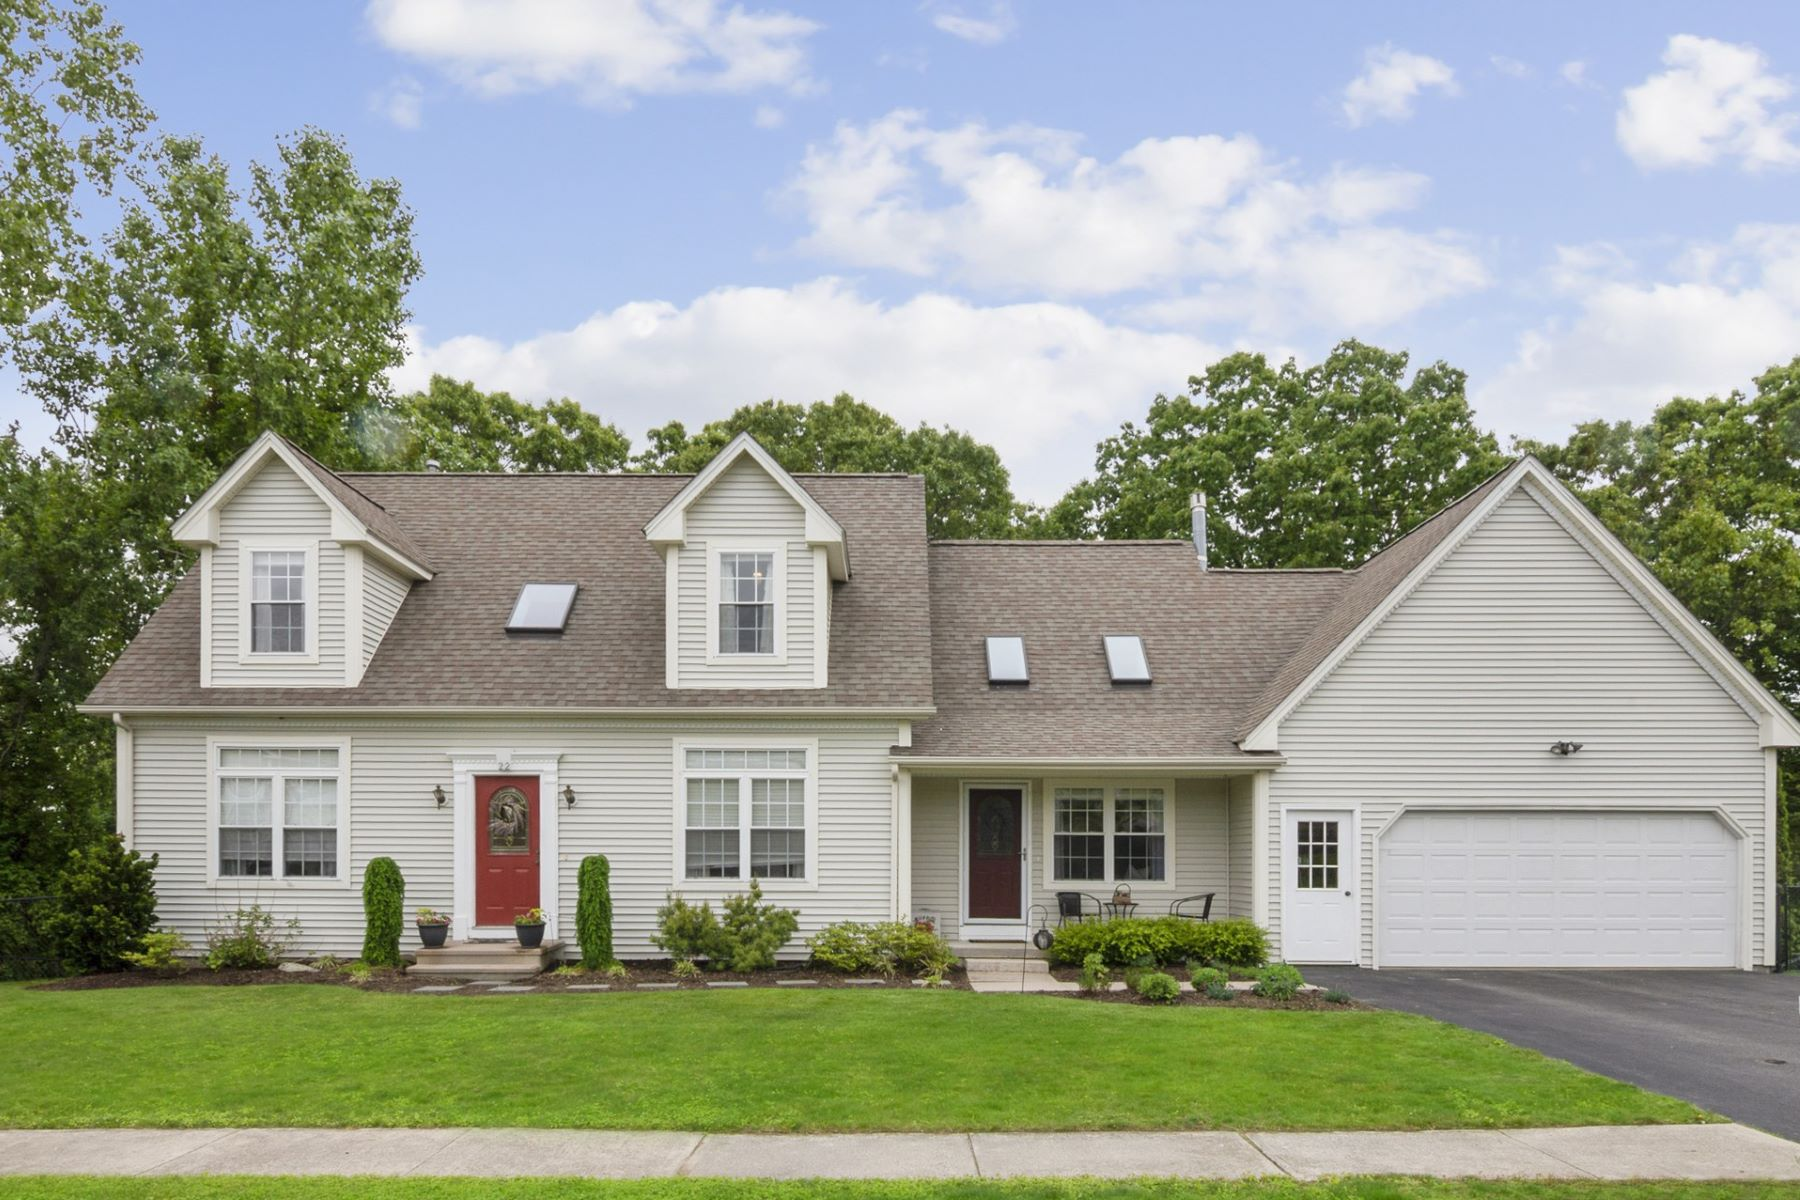 single family homes for Sale at 22 Linda St, Lincoln, RI Lincoln, Rhode Island 02865 United States